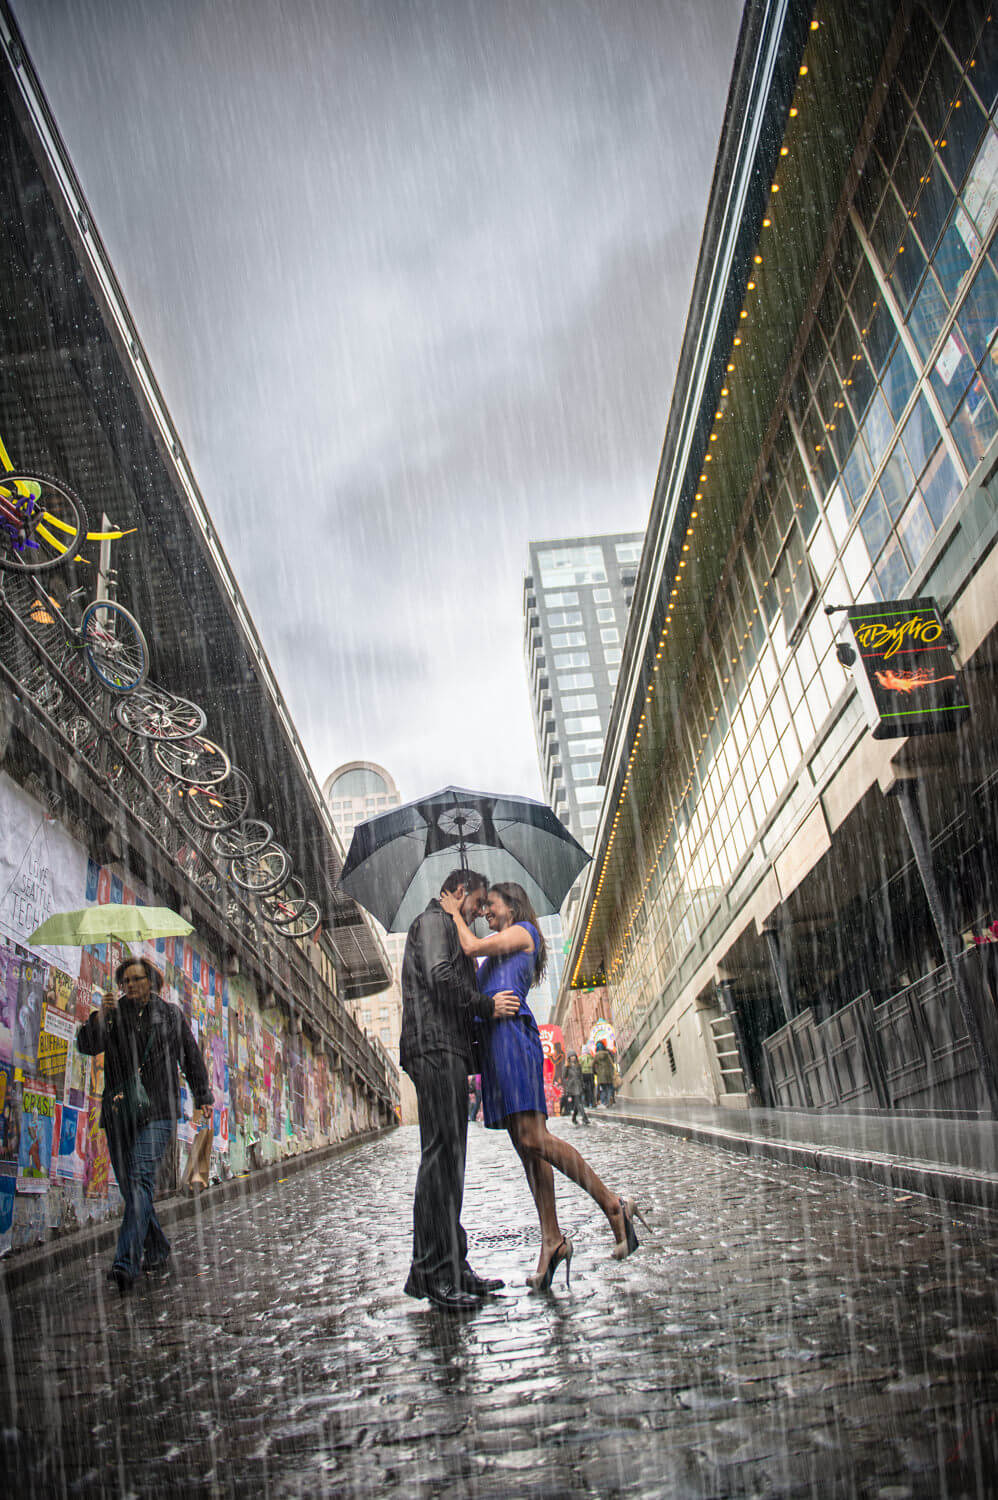 seattle-rain-kiss-pike-market.jpg